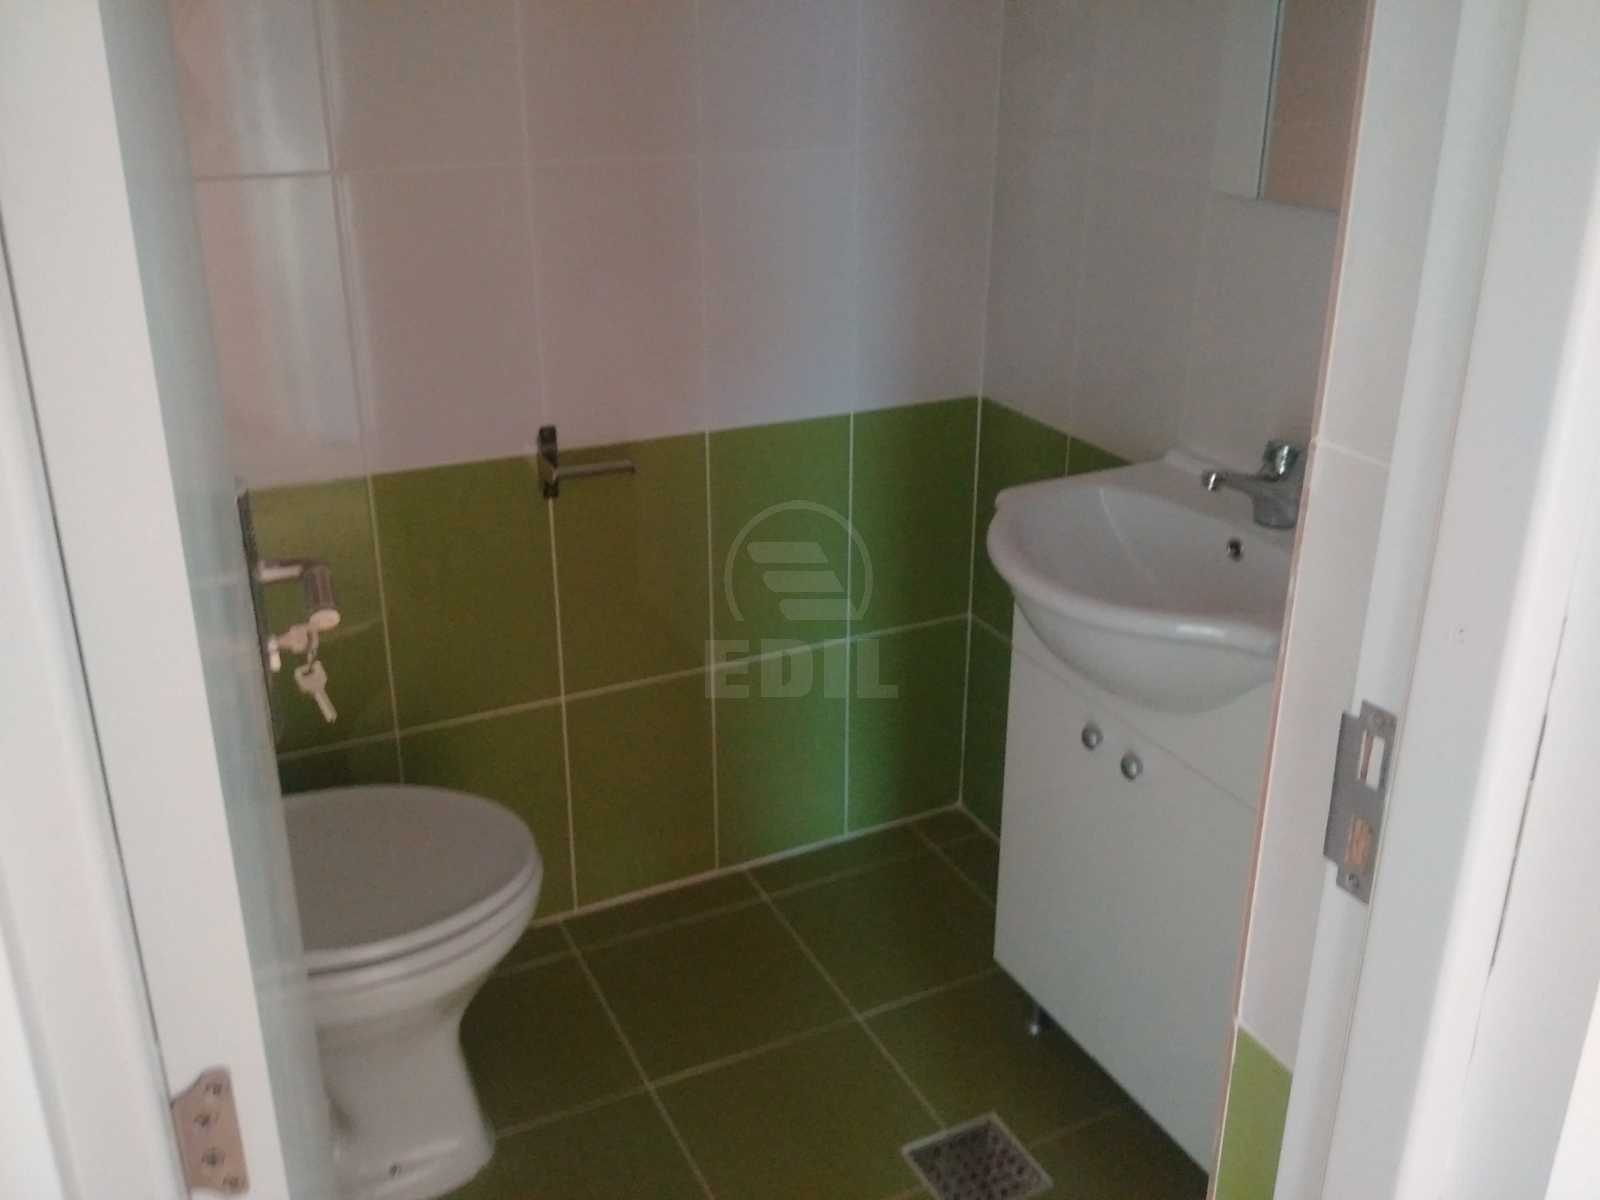 Apartment for rent 3 rooms, APCJ233199FLO-10